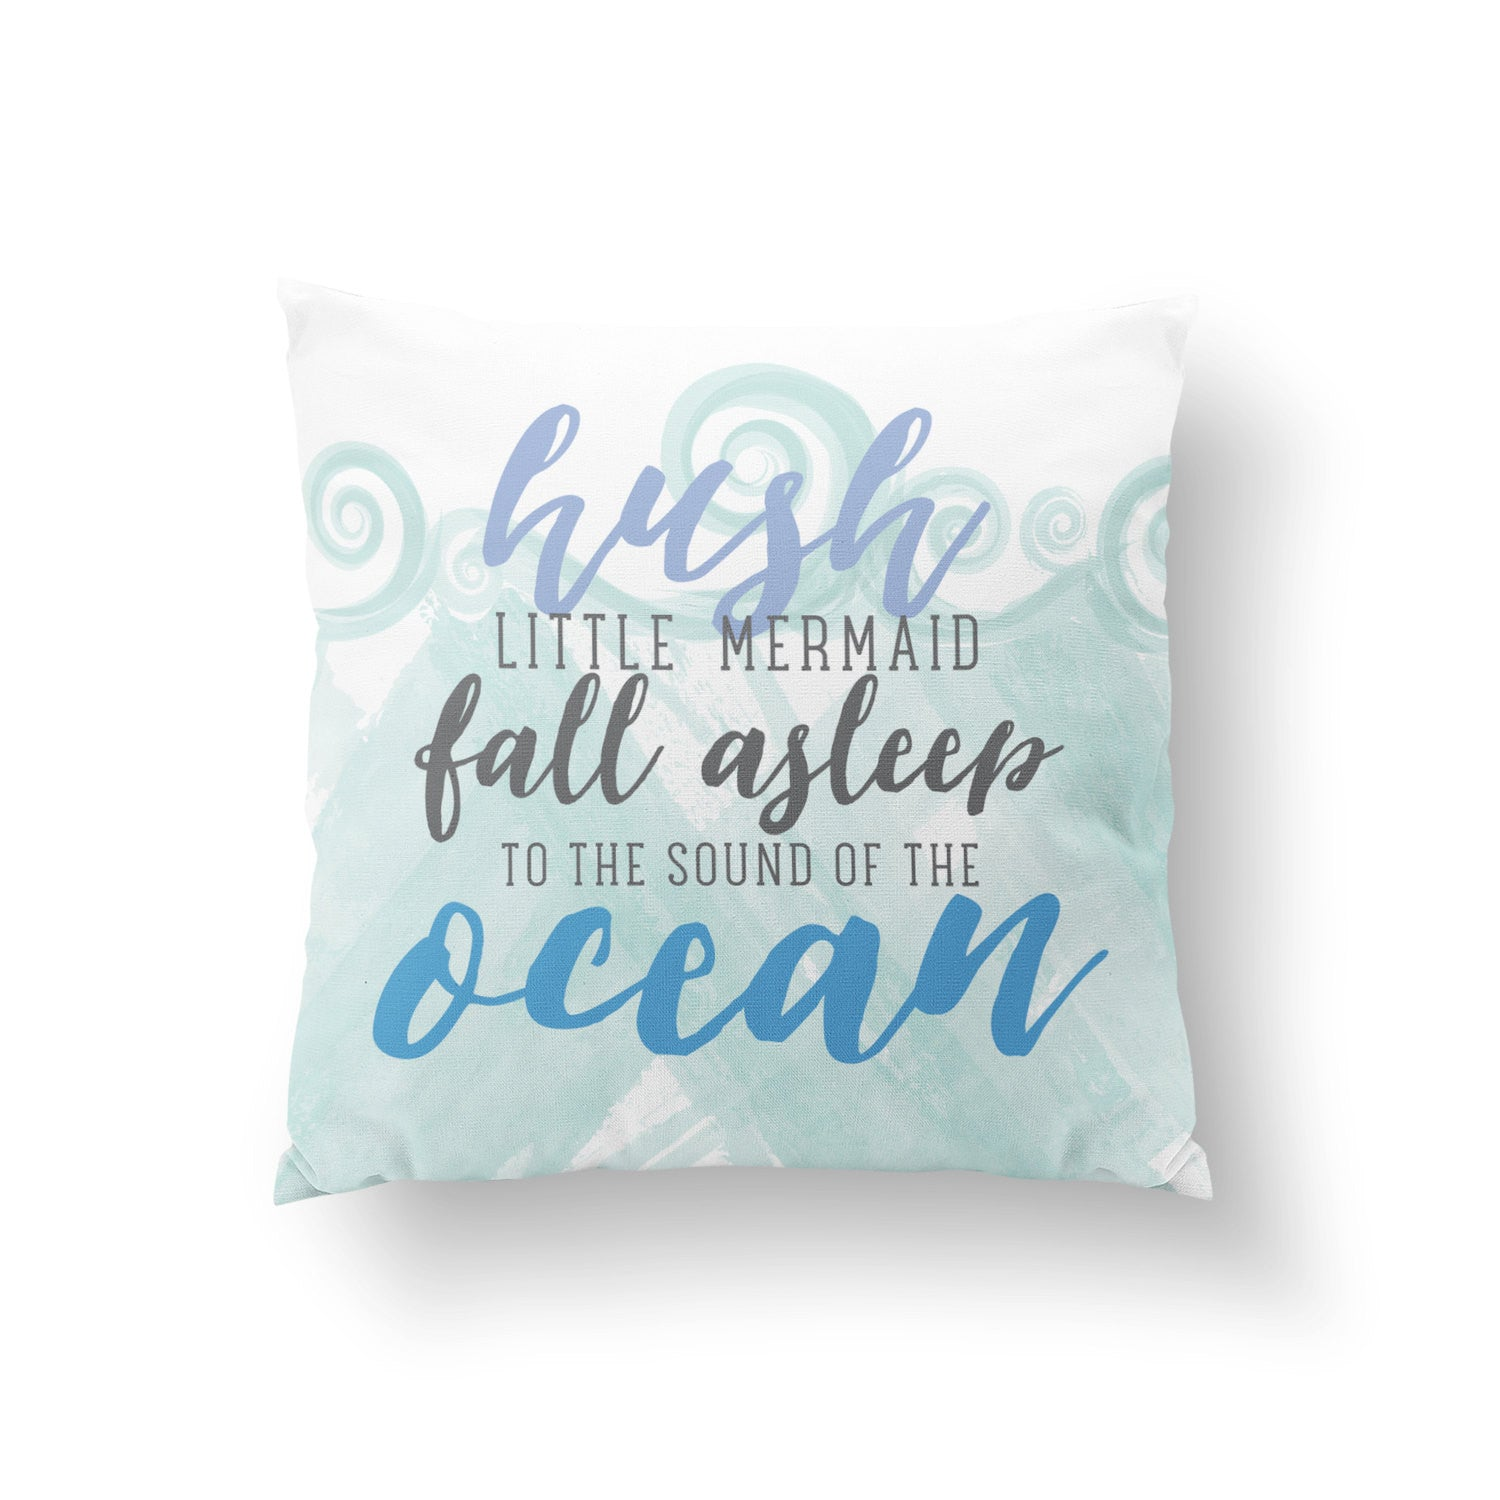 Little Mermaid Pillow